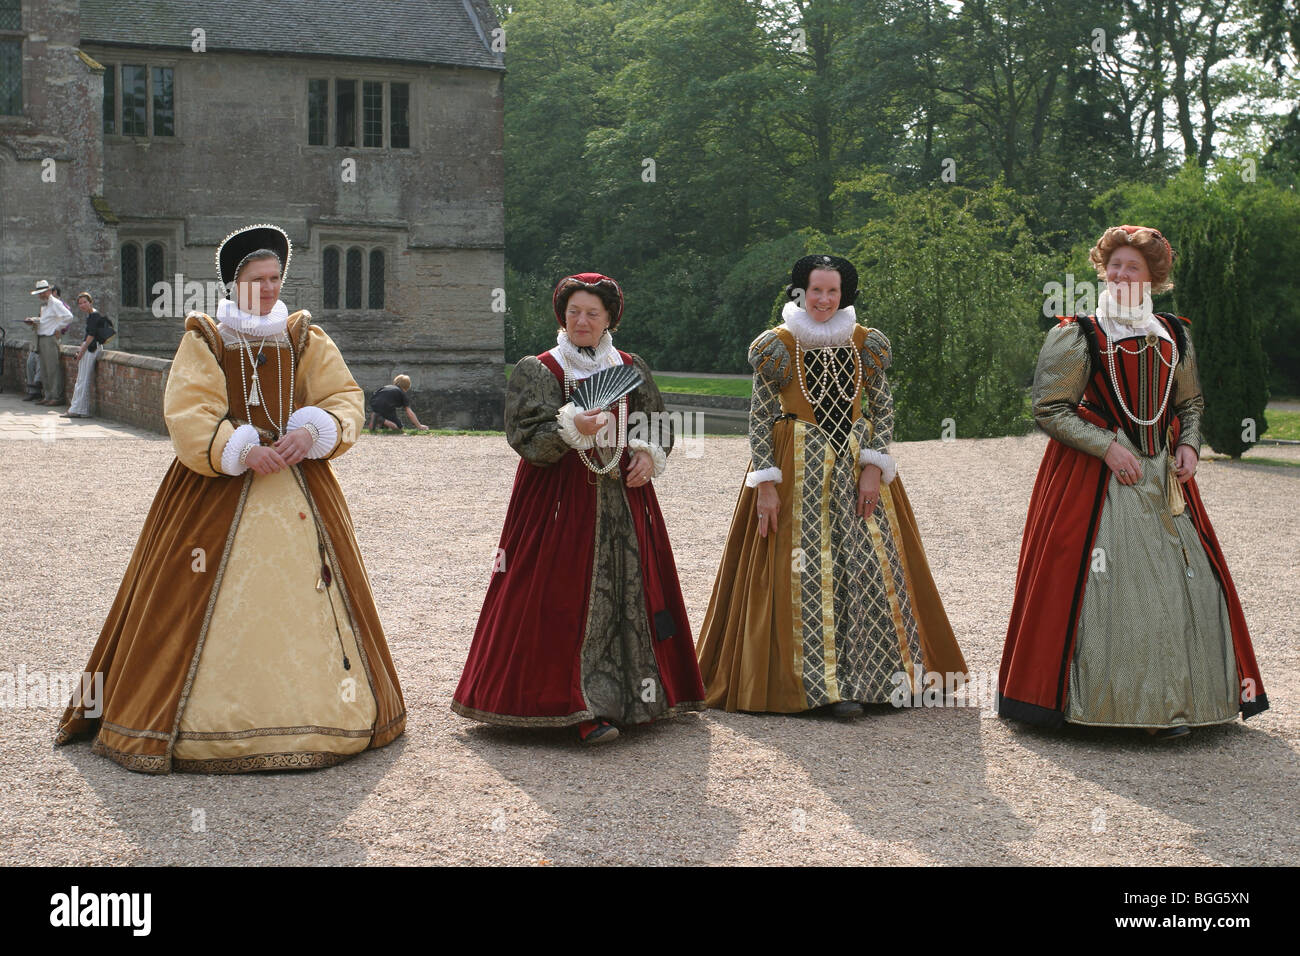 Four fine Elizabethan ladies promenading in the gardens of an English stately home in their authentic period costumes - Stock Image